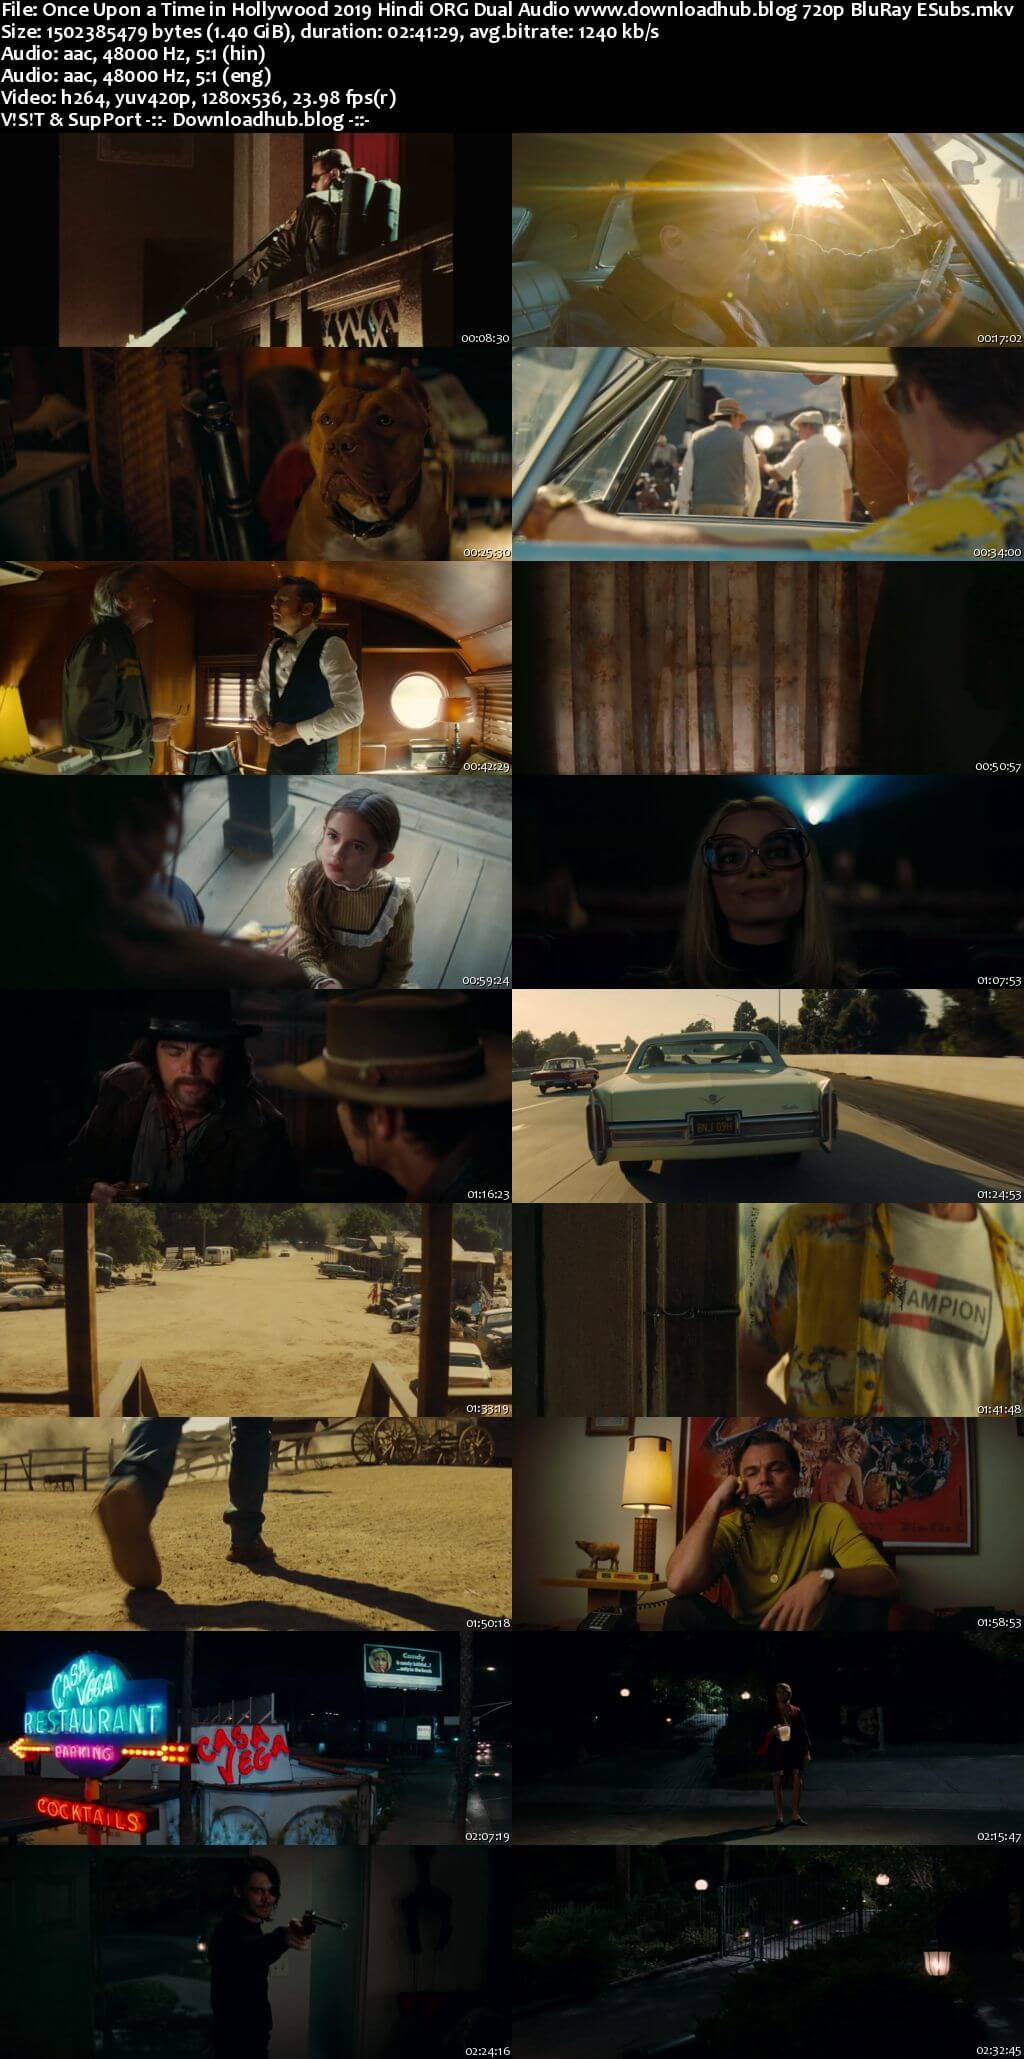 Once Upon a Time in Hollywood 2019 Hindi ORG Dual Audio 720p BluRay ESubs